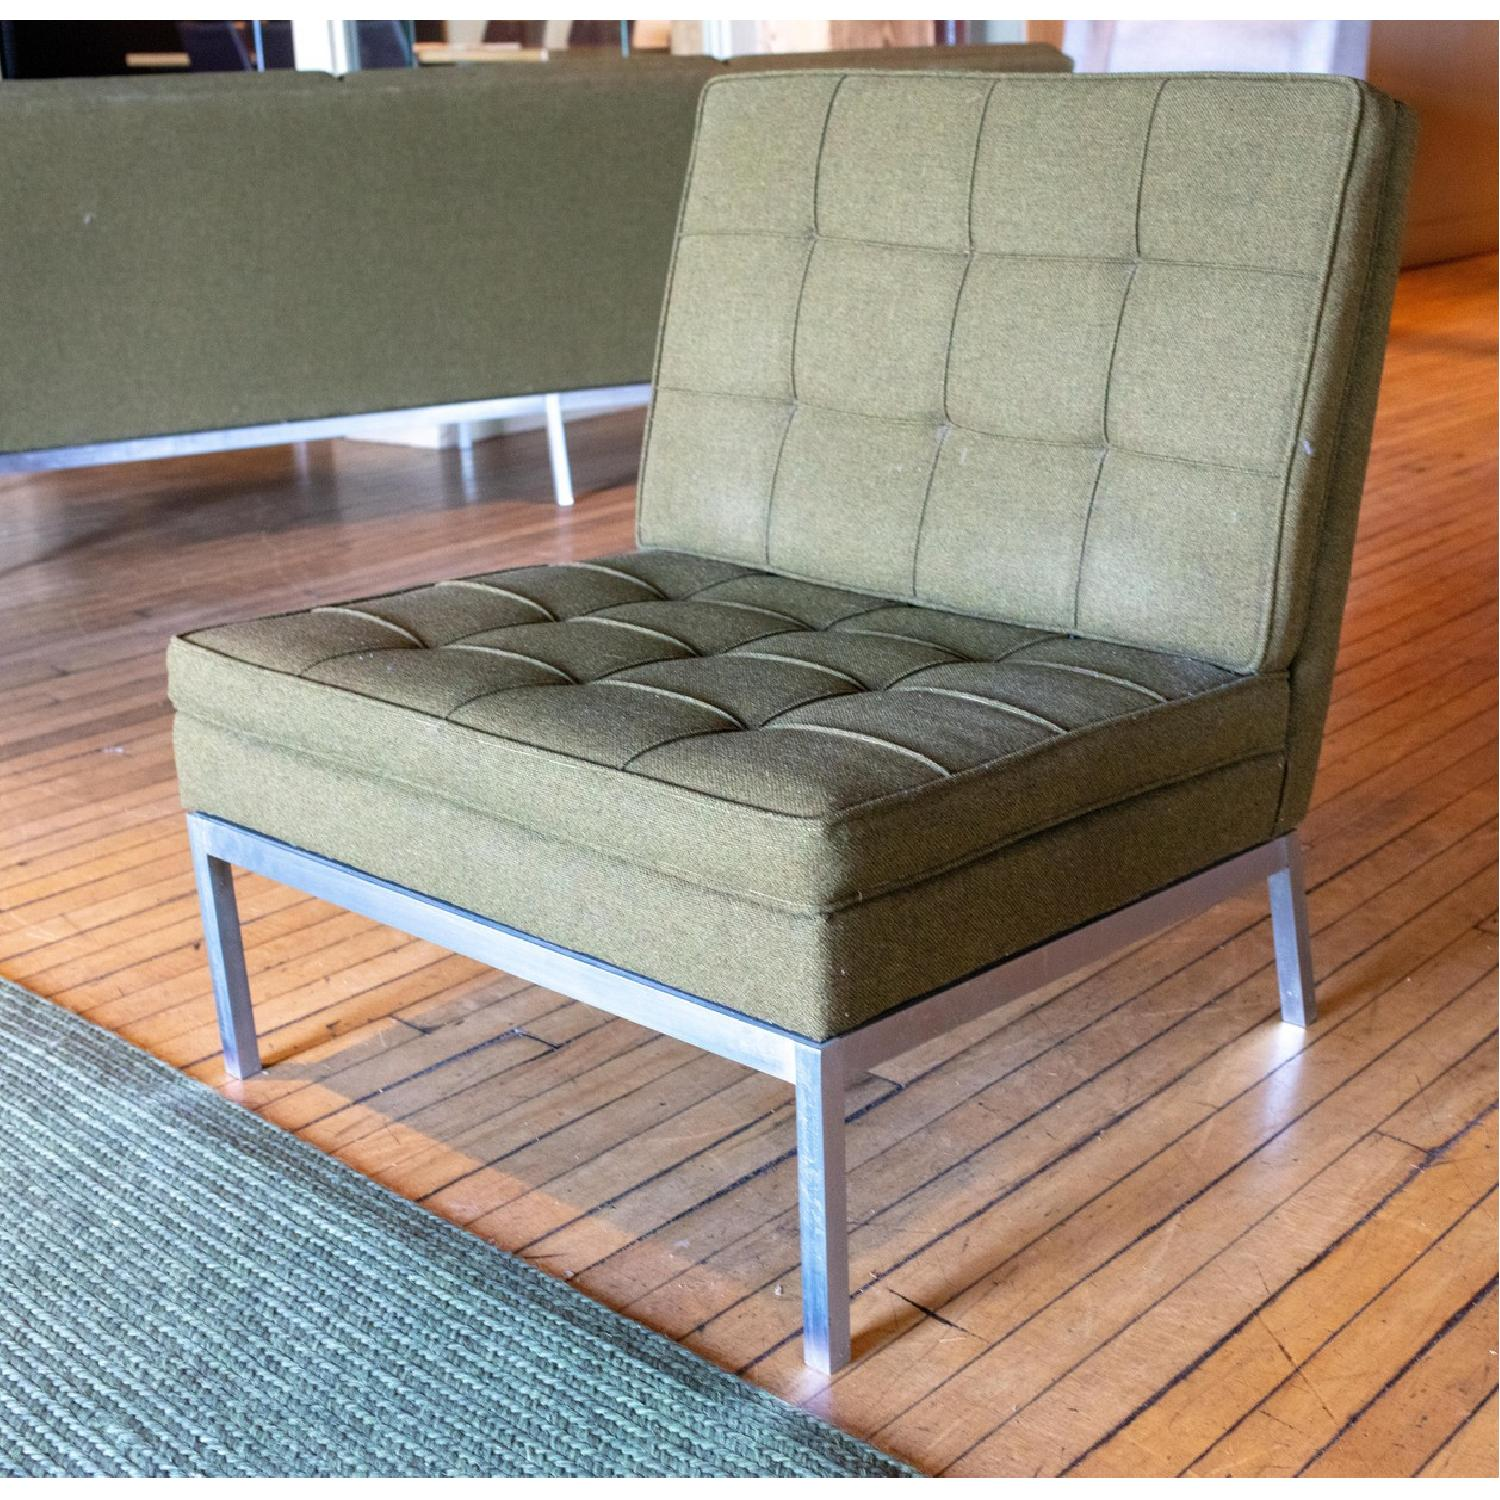 Vintage Florence Knoll Chair - image-1